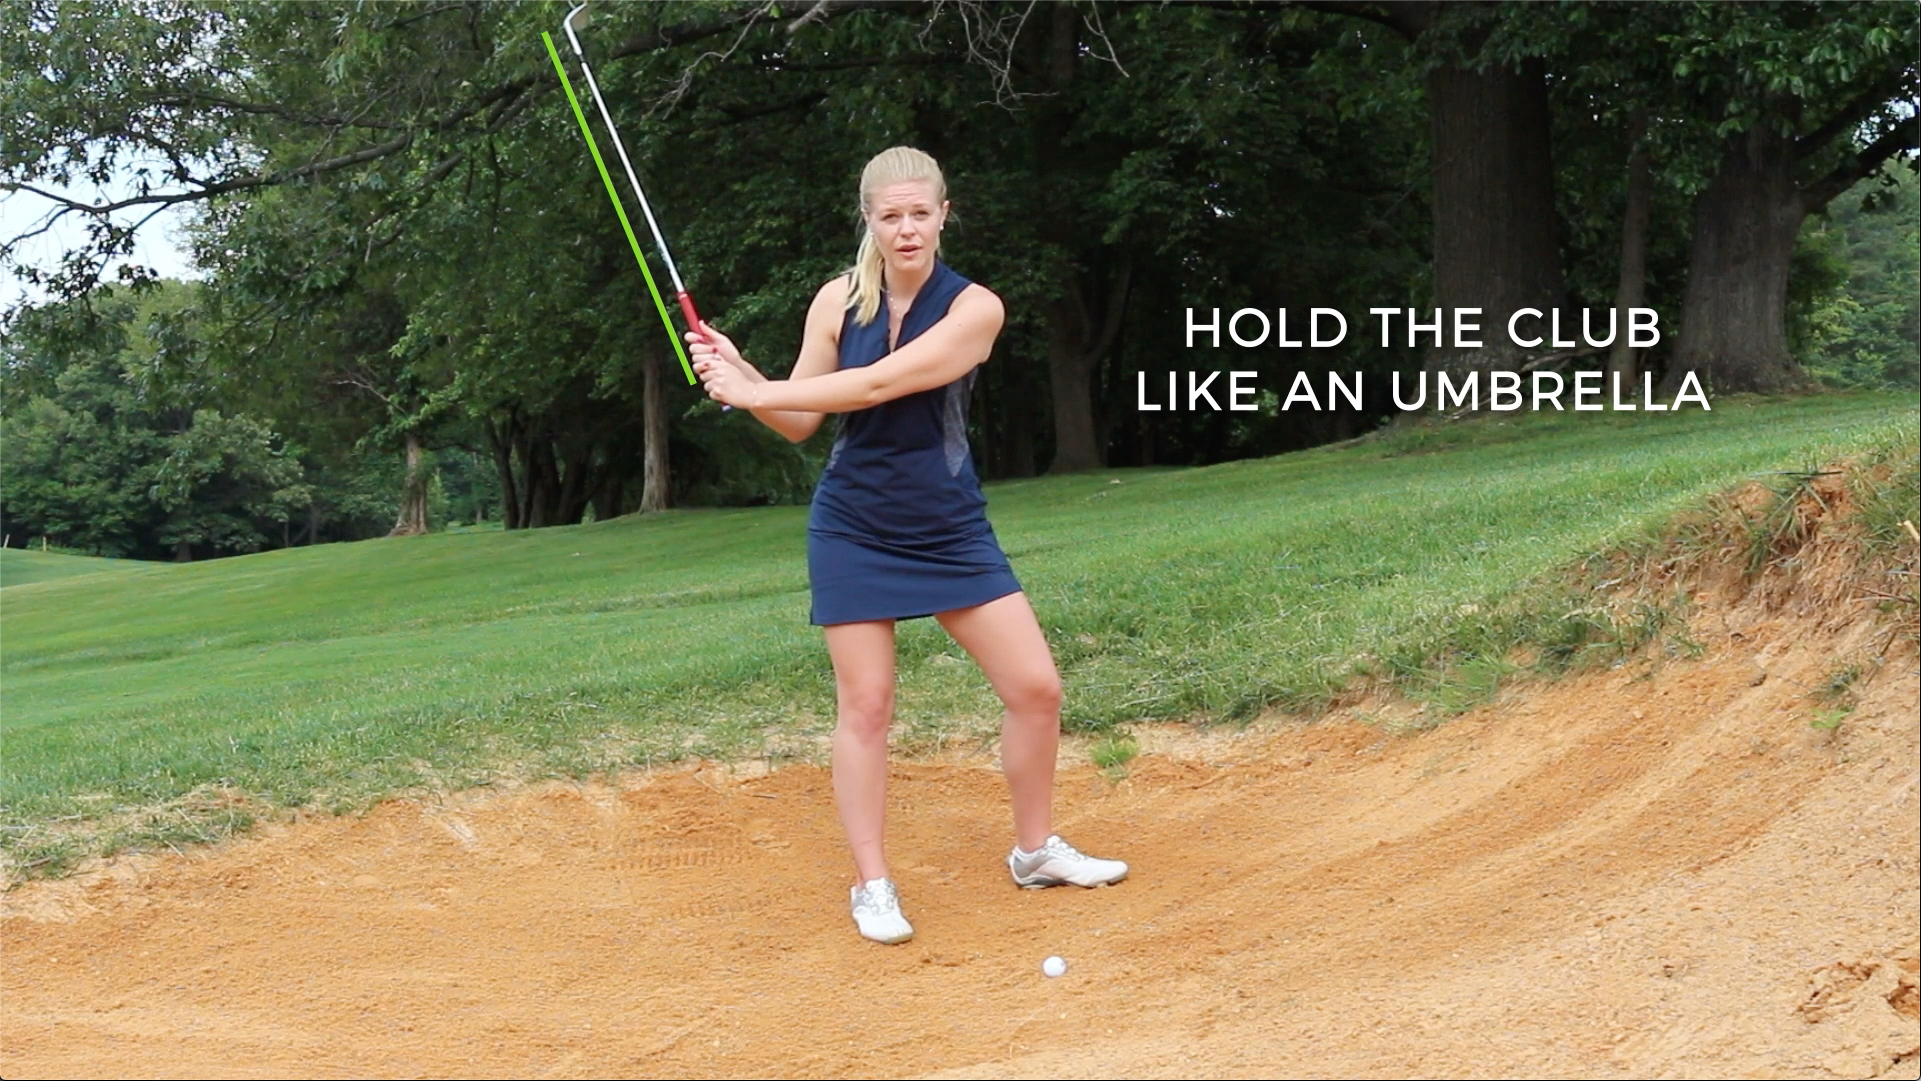 Holding the club up closer to your ears, like an umbrella, is better for hitting out of the sand